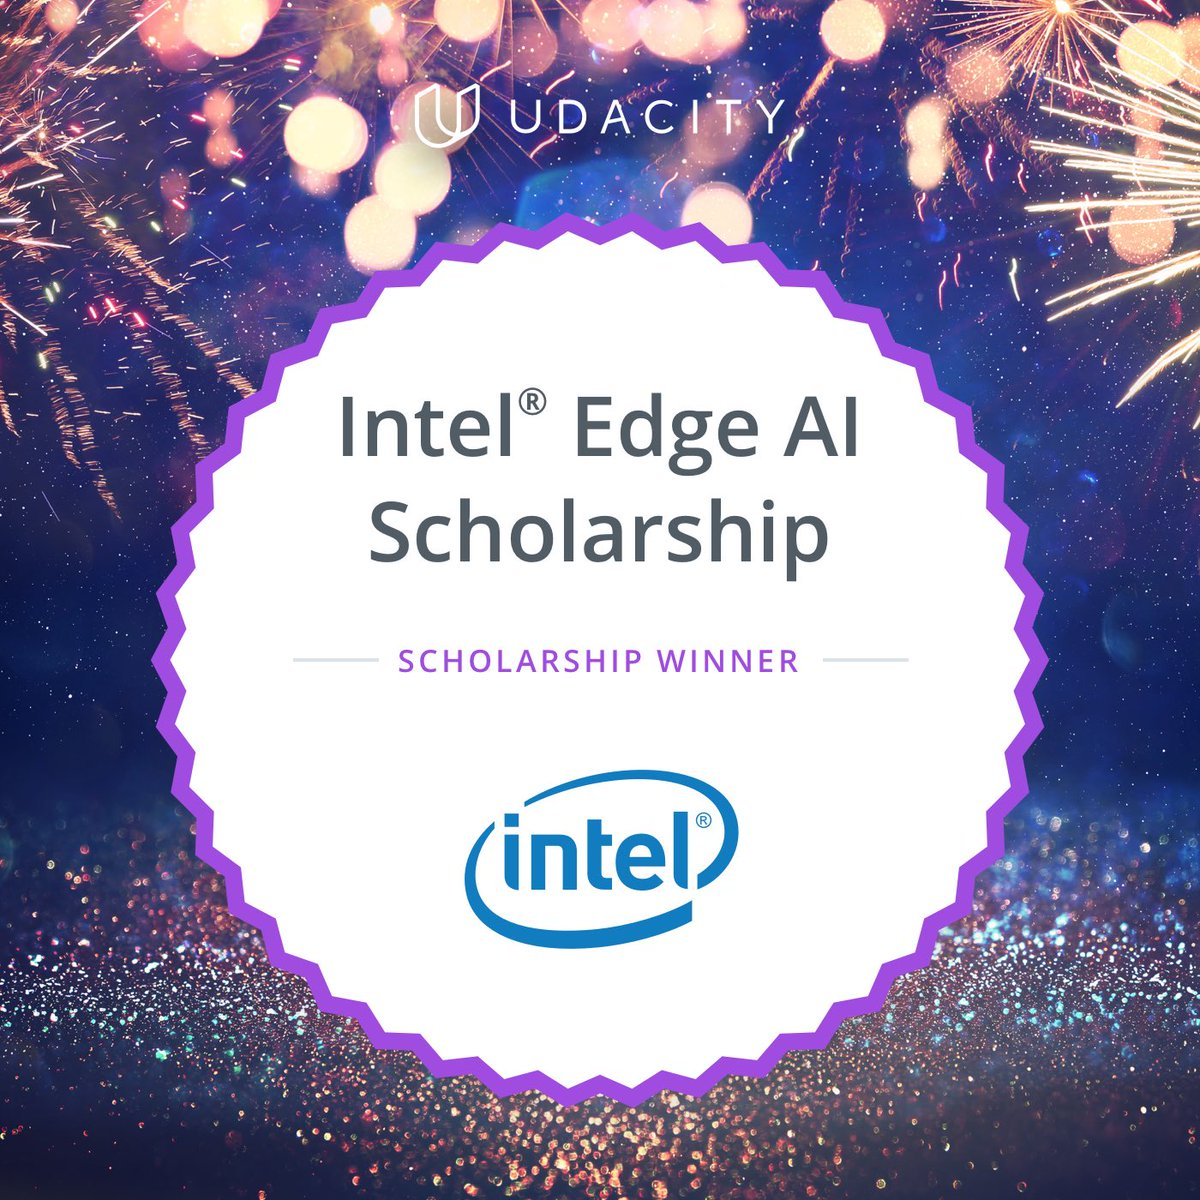 I have been selected for phase 2 and a full scholarship of the Intel Edge AI Nanodegree on Udacity! https://t.co/MyuH9VIrSZ #udacityinteltechscholars https://t.co/eig6Vje84f